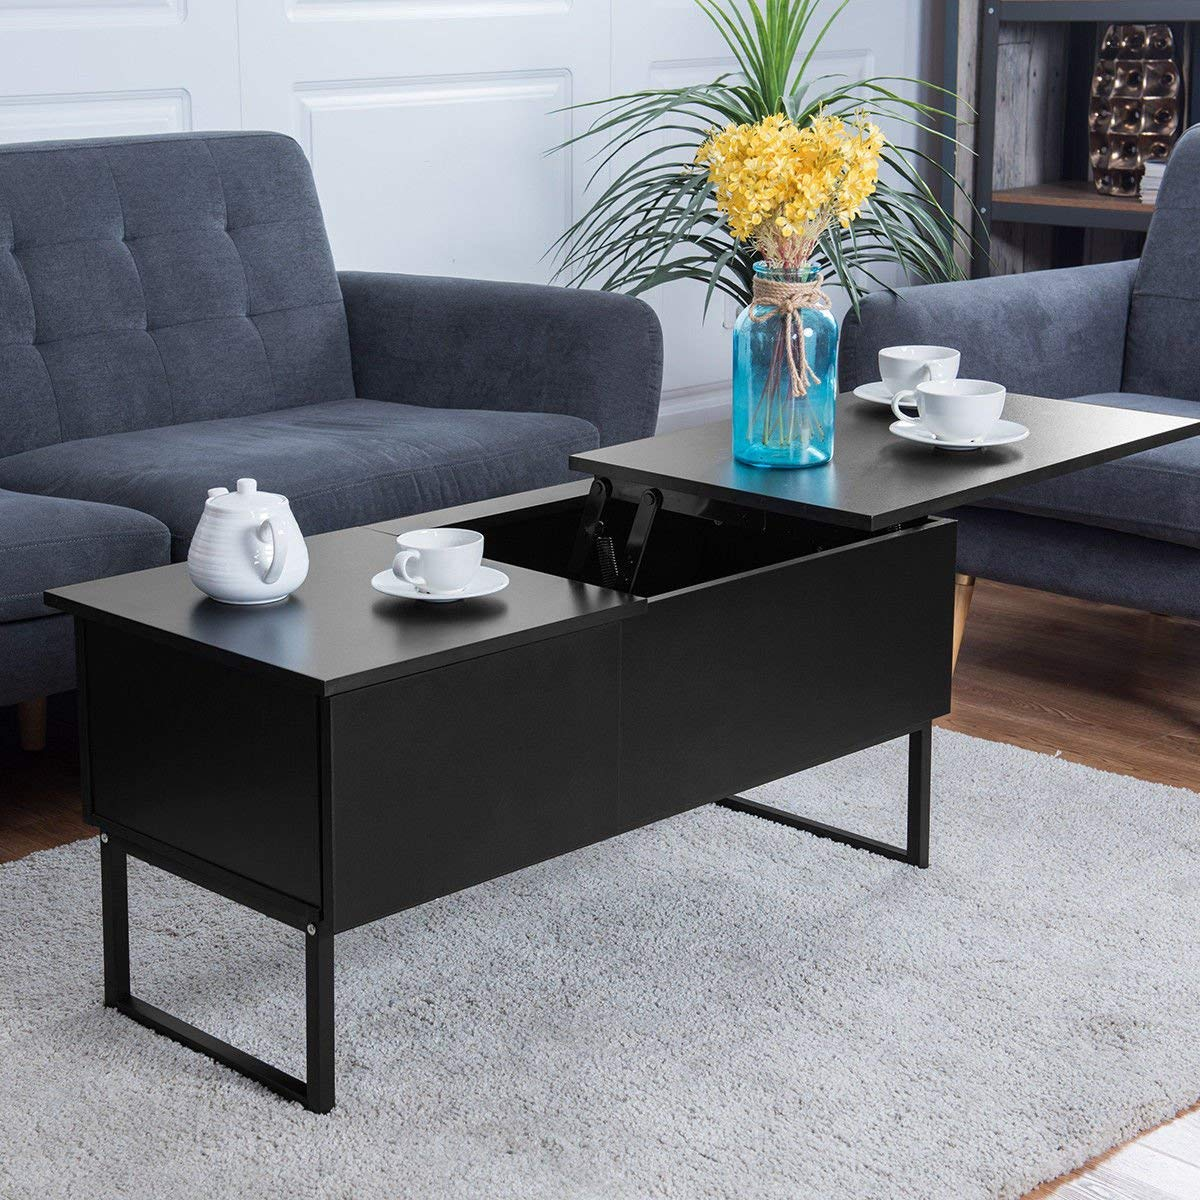 ktaxon Lift Top Coffee Table w/ Hidden Compartment and Storage Drawer Furniture Black